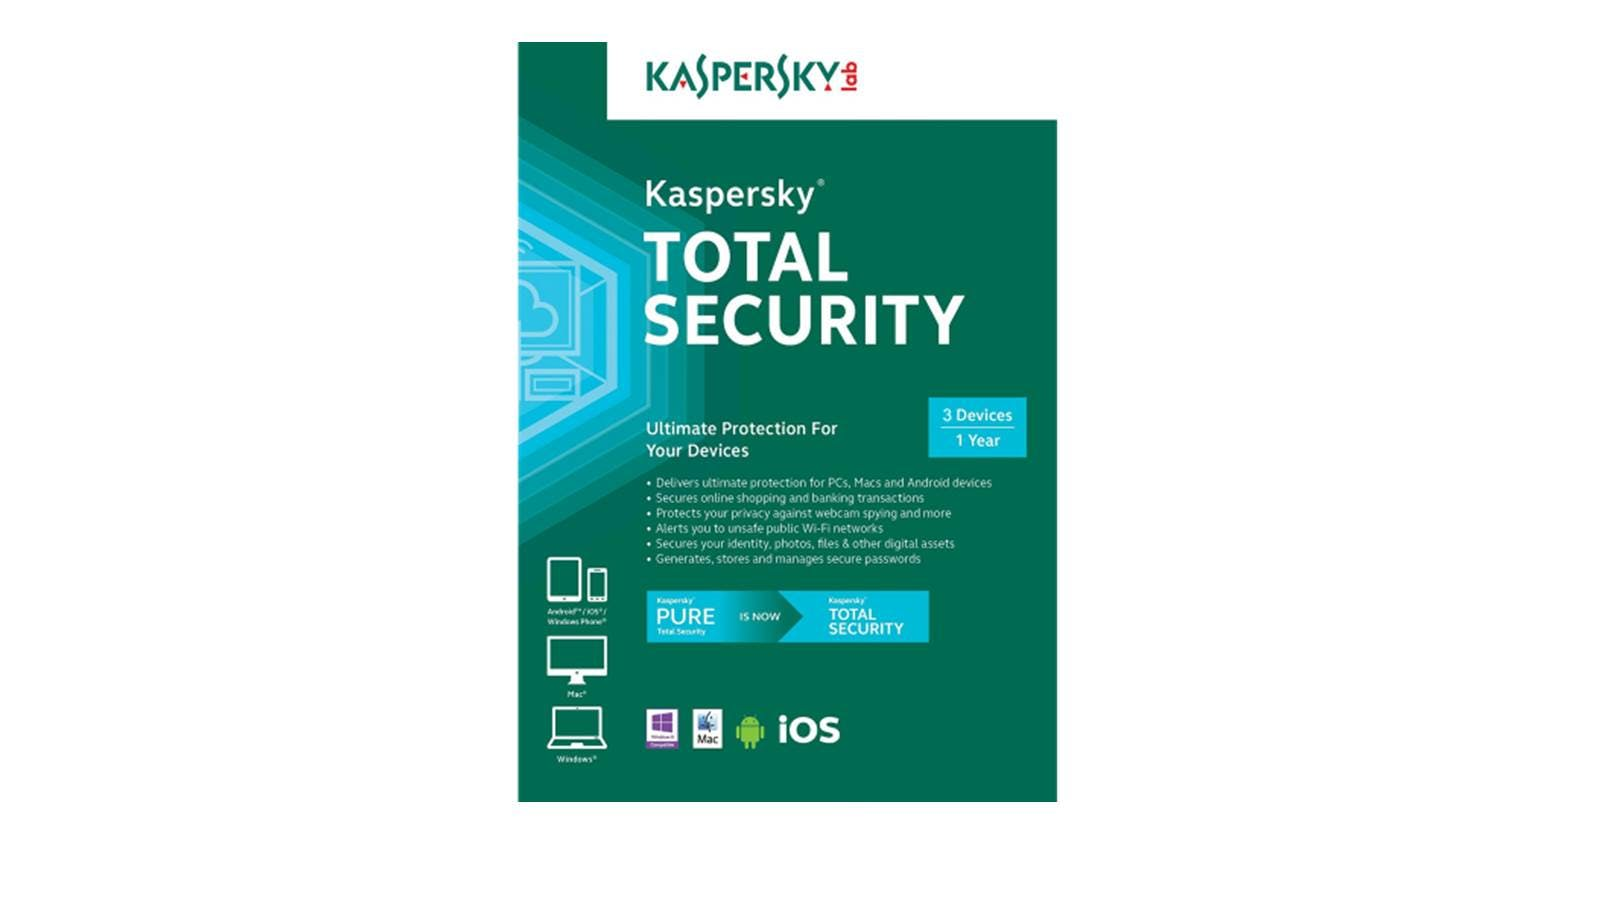 Home :: Computing :: Computer Accessories & Peripherals :: Software ::  Kaspersky Total Security Software - 3 Users